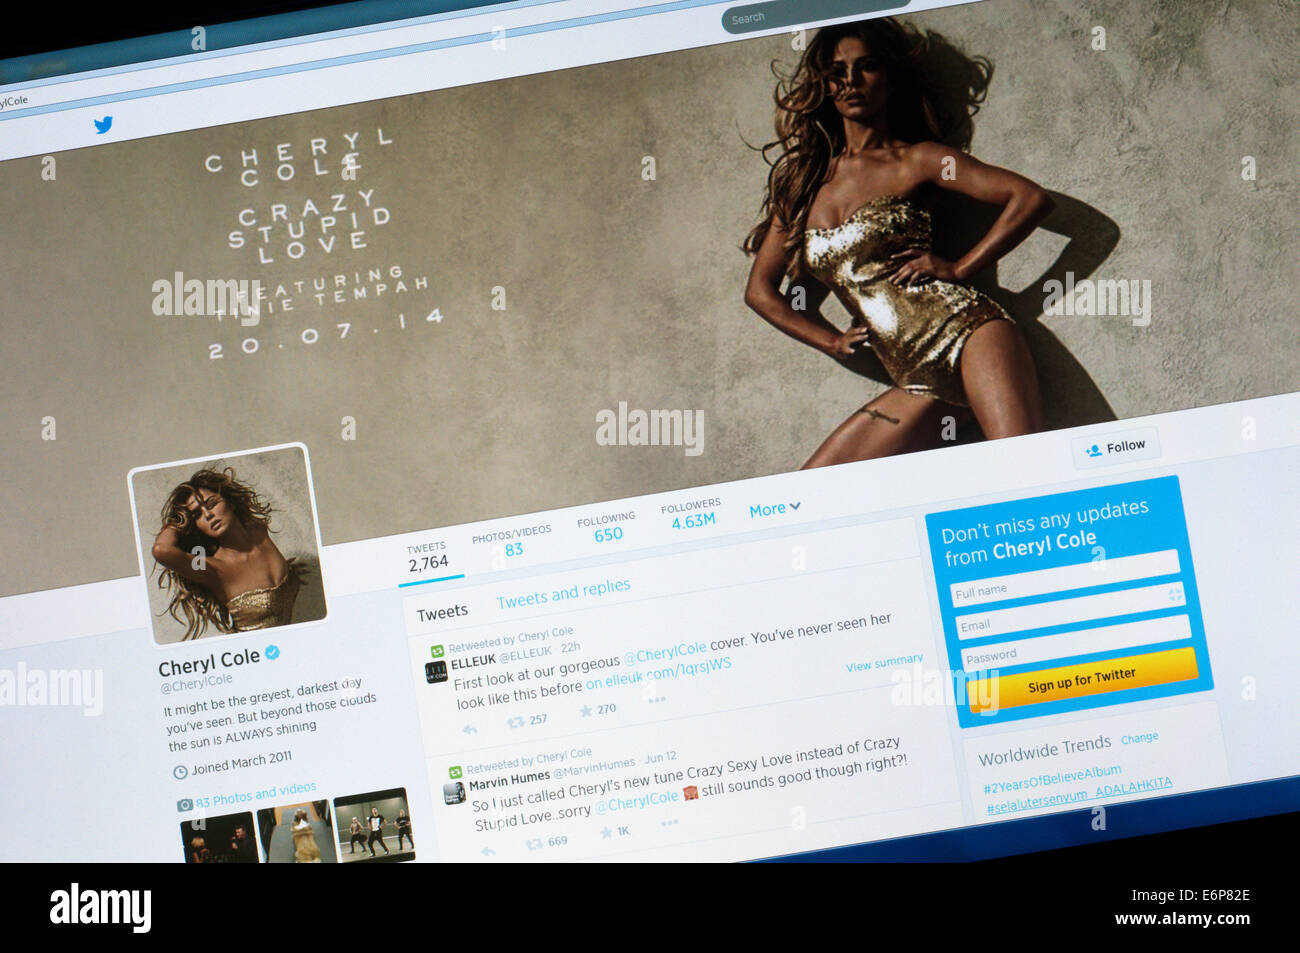 The twitter account of Cheryl Cole. - Stock Image